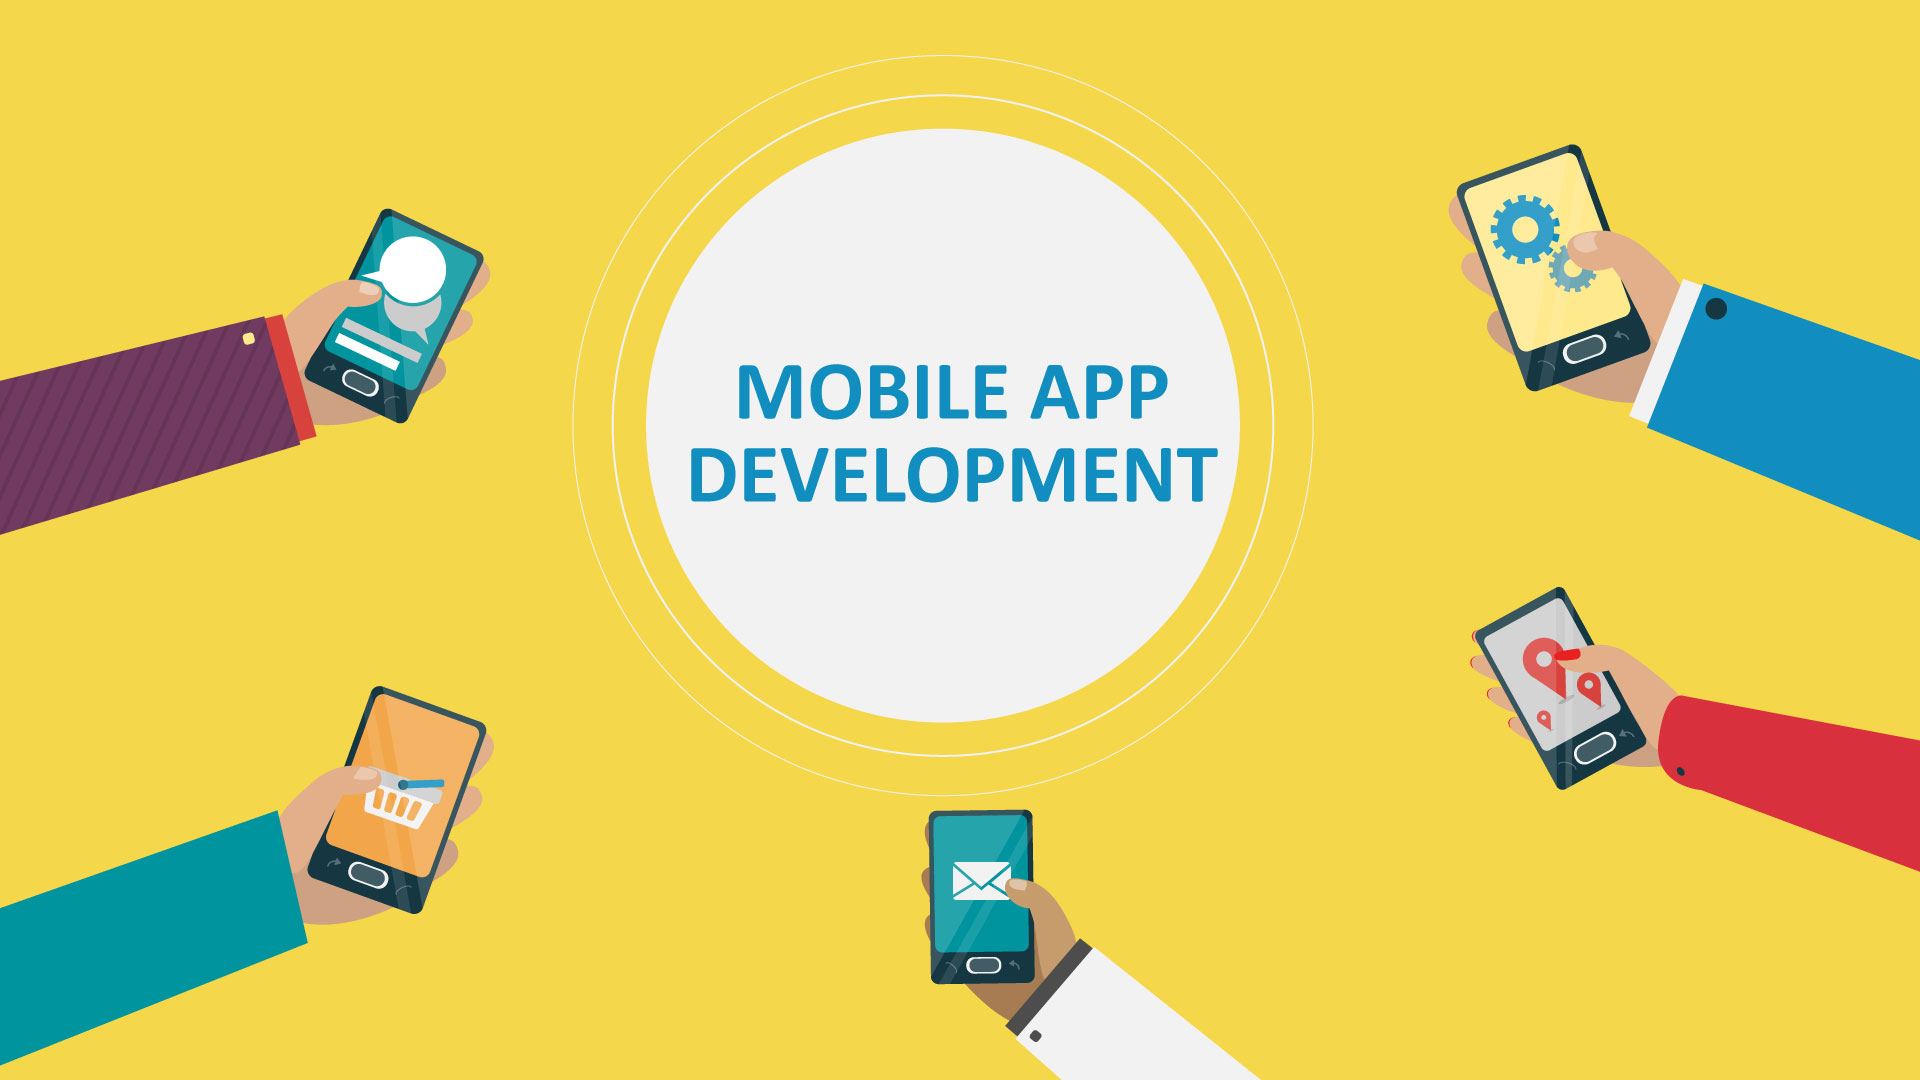 7 Most common problems App Developers faces during Mobile App Development